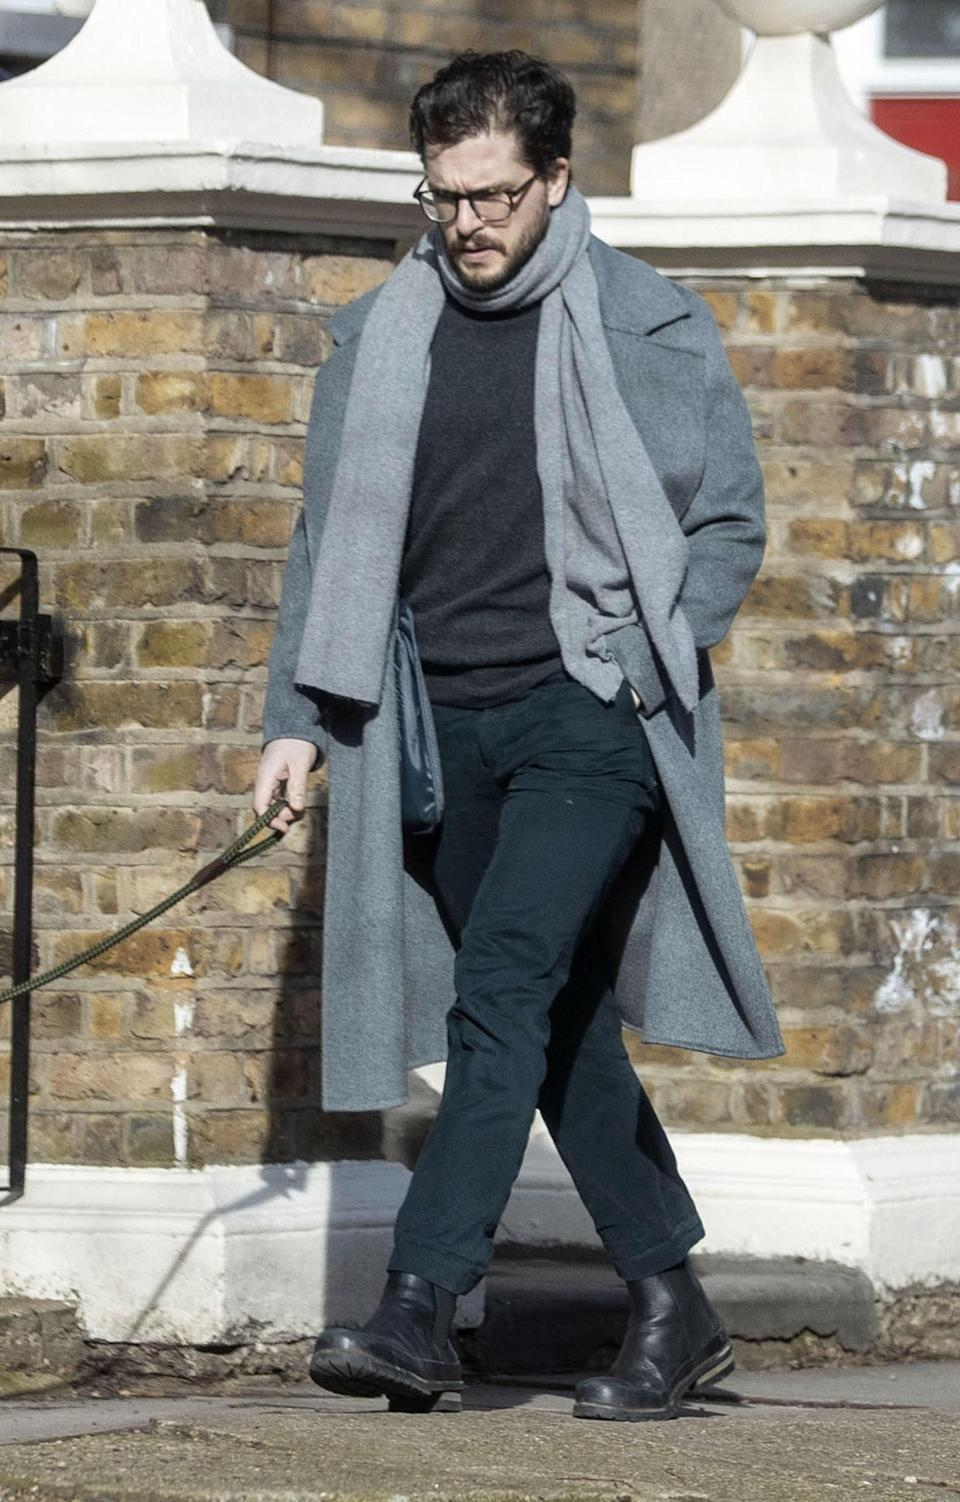 "<h1 class=""title""><em>EXCLUSIVE</em> Kit Harington pictured out and about in North London with his beloved pet dog</h1><cite class=""credit"">XPOS / Backgrid</cite>"